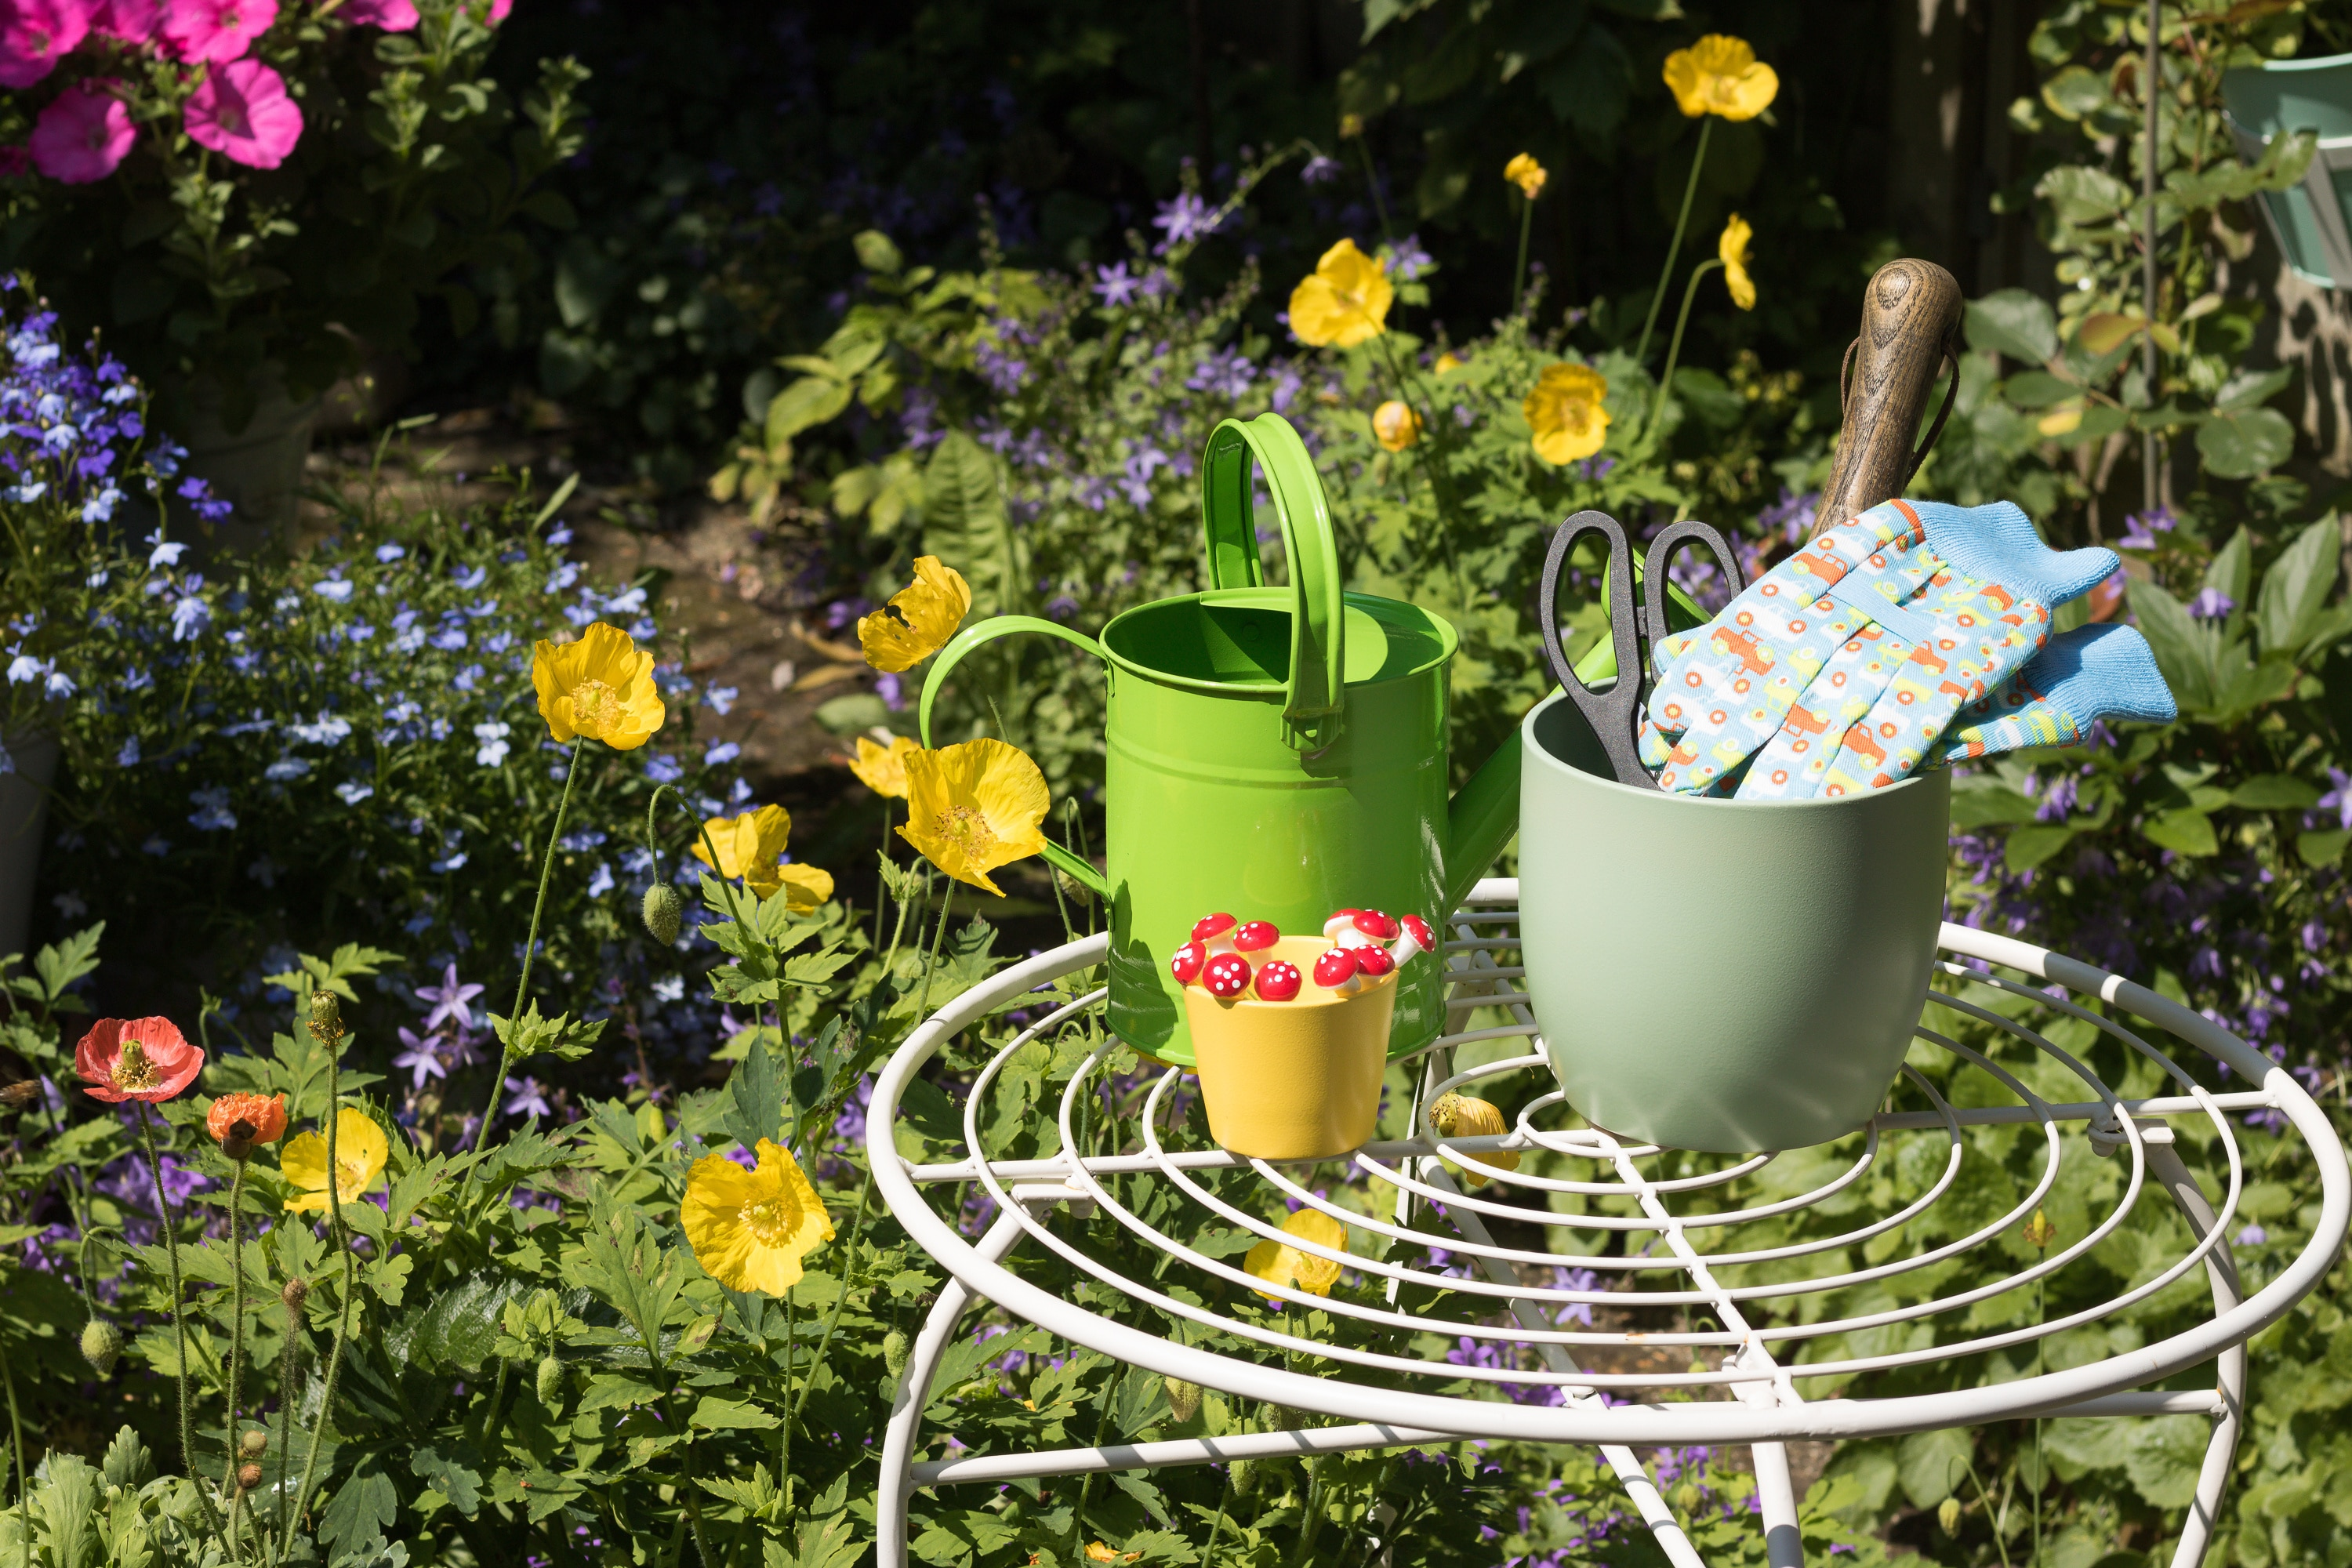 View of colorful flowering summer garden. Garden tools, gloves, flower pots, watering can is on a garden table among growing flowers on a sunny day. Concept: gardening.